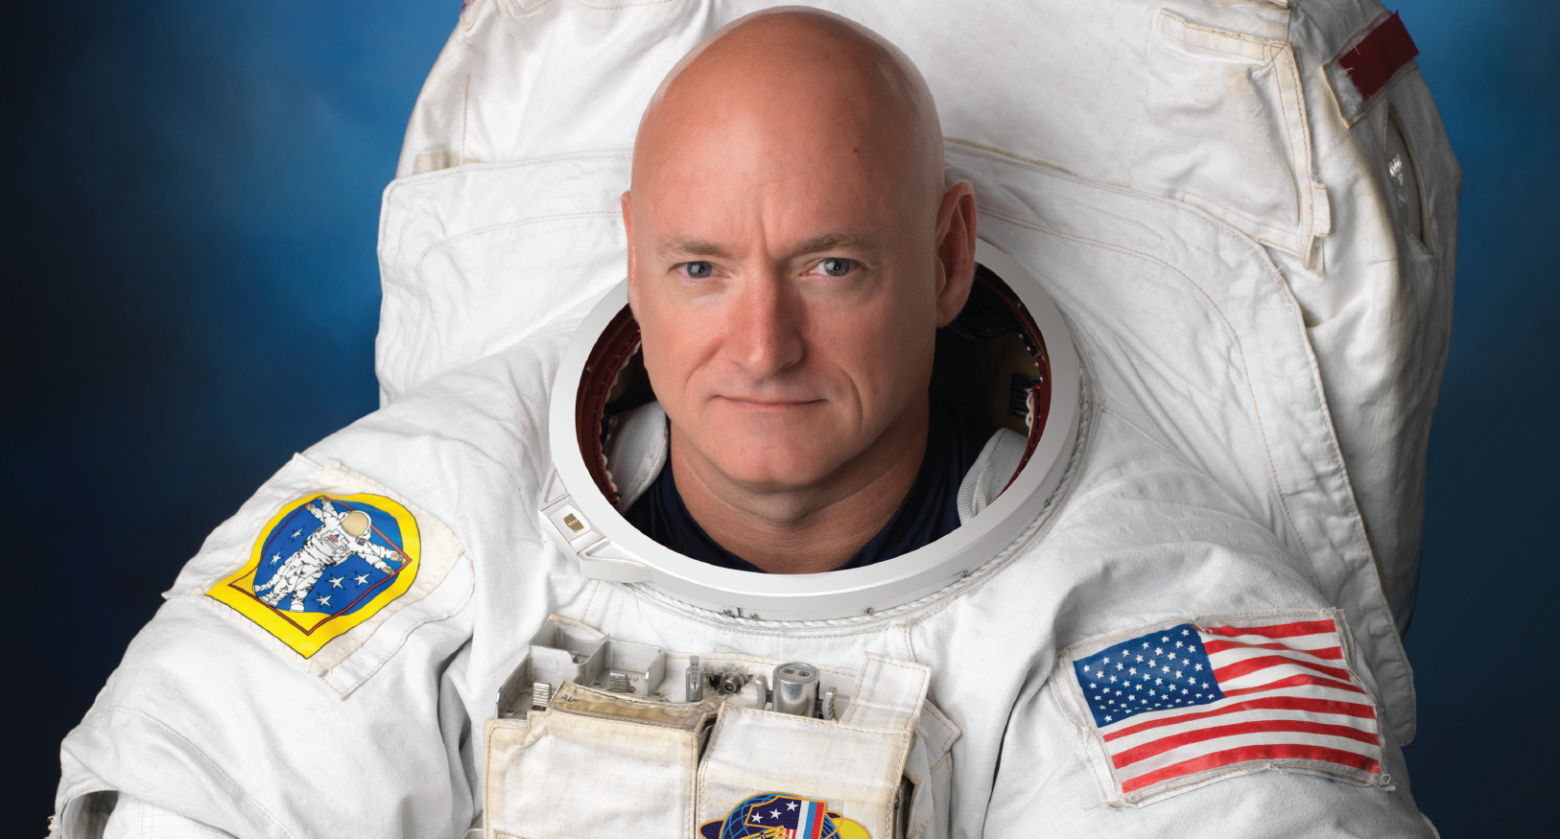 [image] Top 10 Life Lessons from Scott Kelly